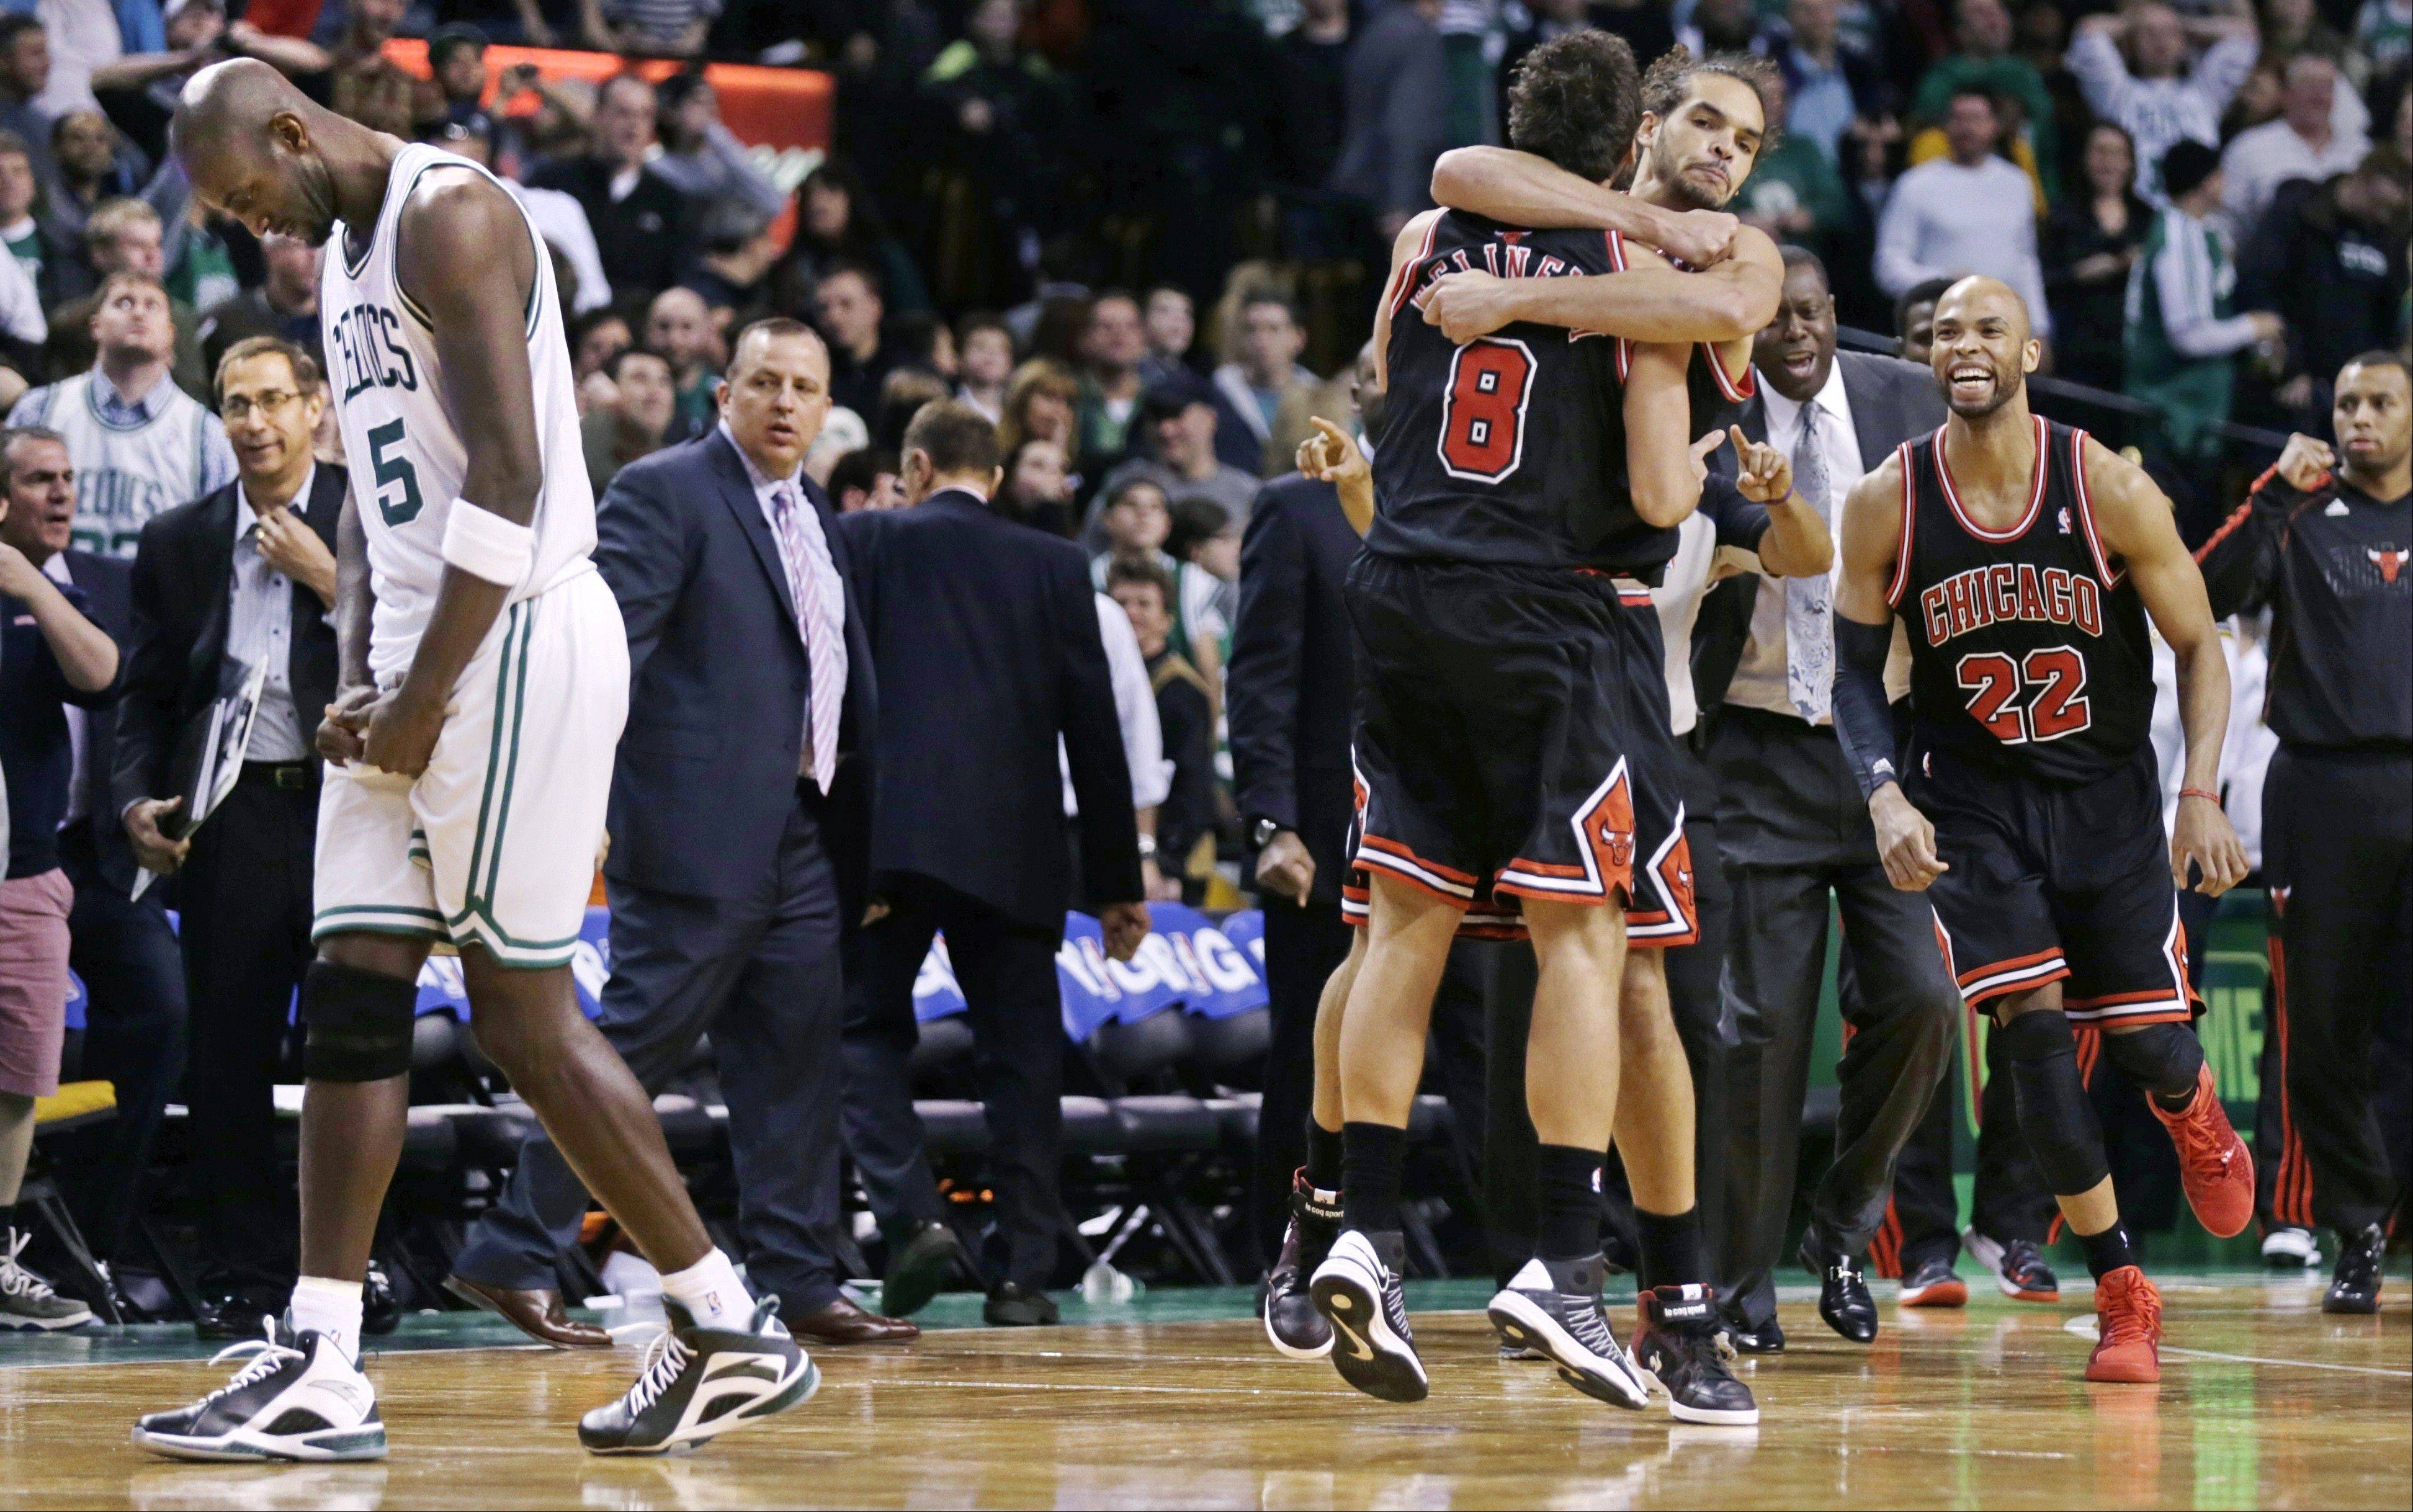 As Boston Celtics forward Kevin Garnett, left, walks off the court, Chicago Bulls guard Marco Belinelli (8) is congratulated by teammate Joakim Noah after an overtime win Friday in Boston. Belinelli hit the go-ahead basket less than 4 seconds on the clock.